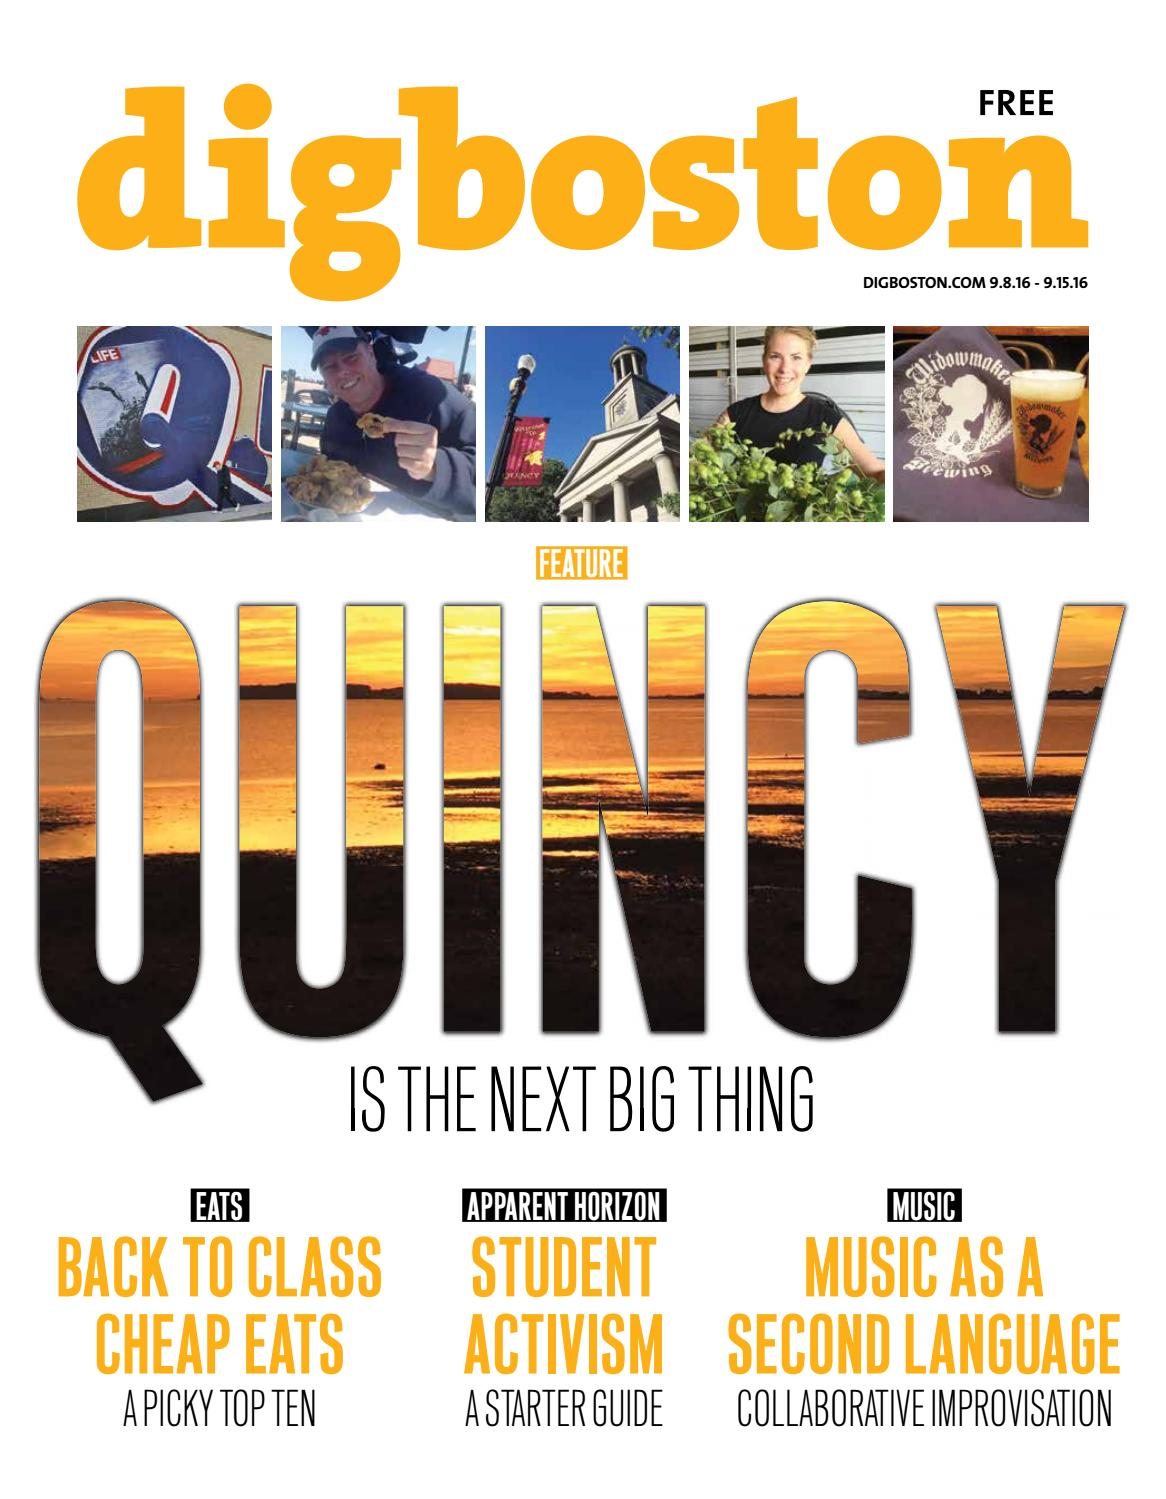 Cucina Mia Quincy Hours 1836dig By Digboston Issuu